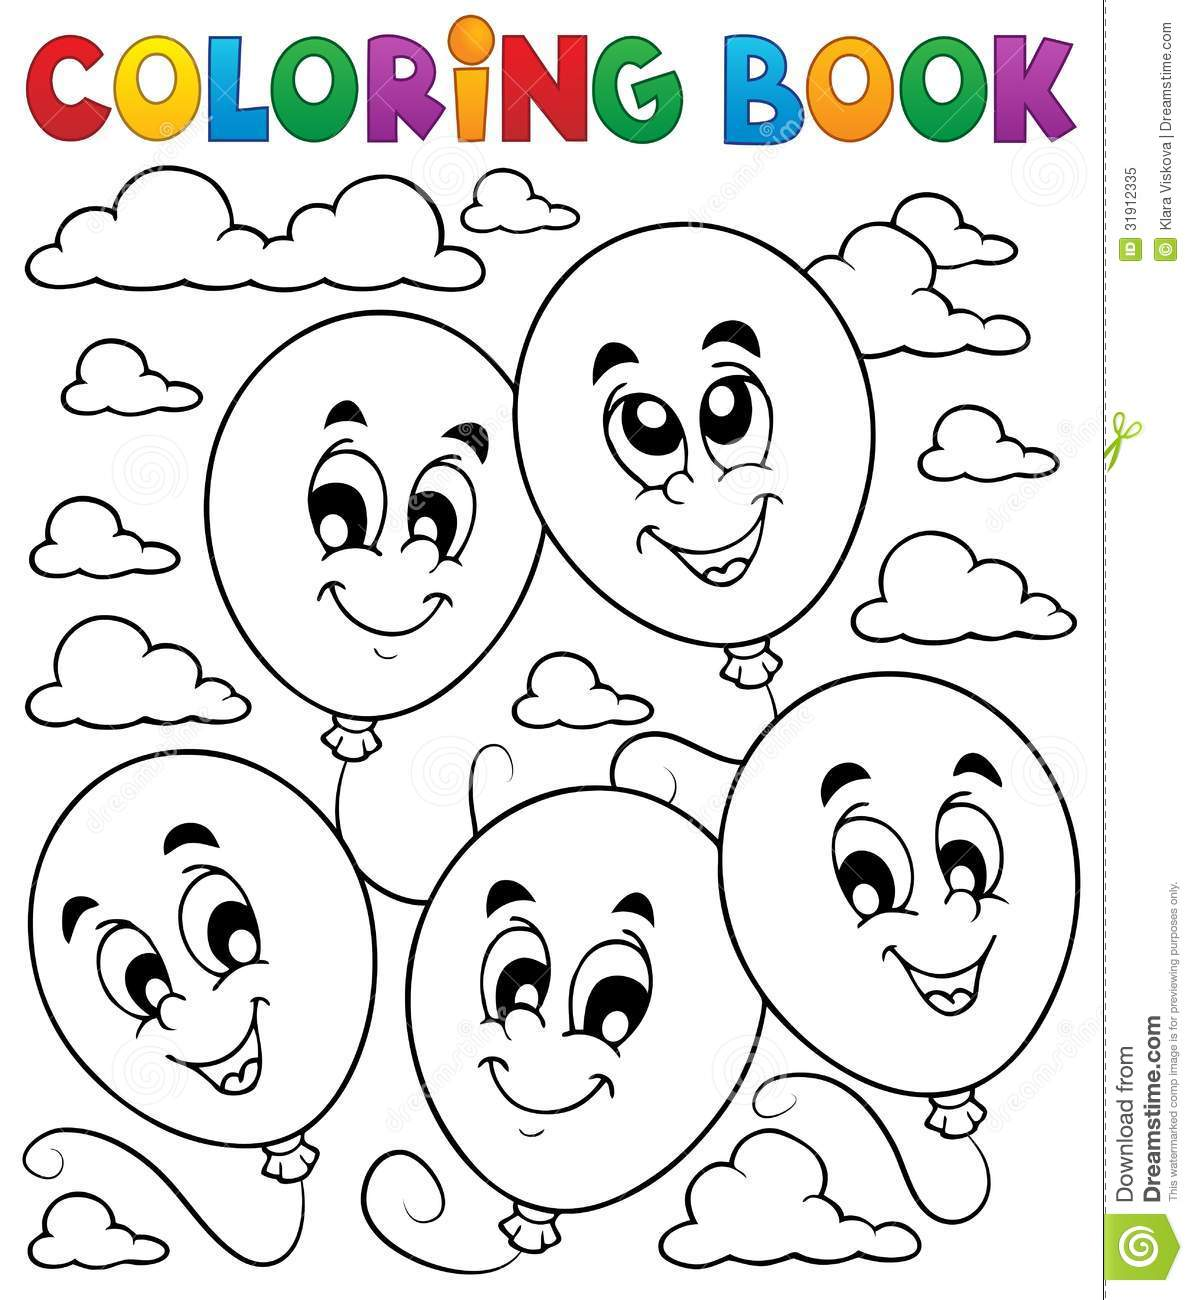 Galerry cartoon colouring in book